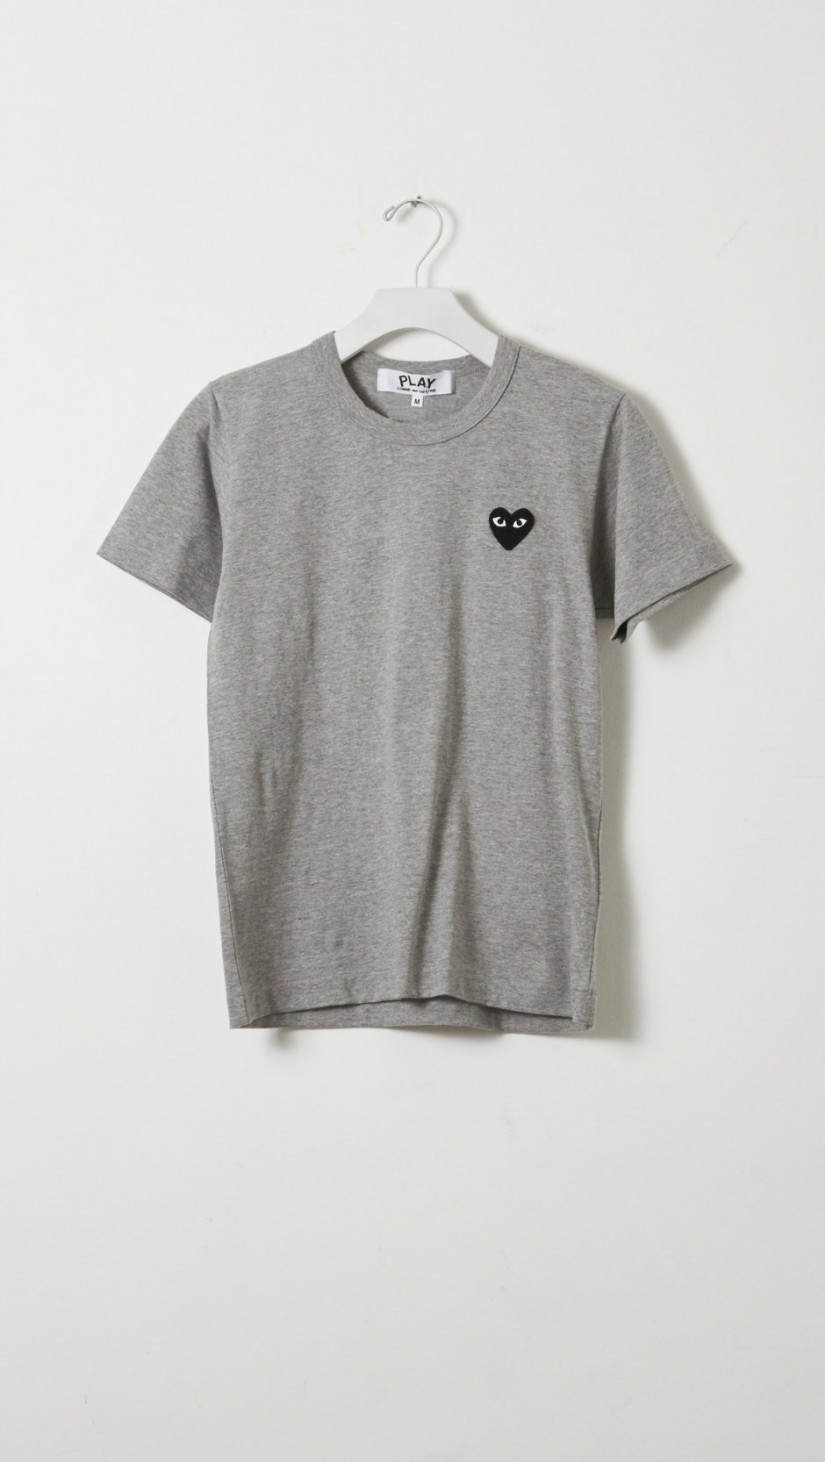 lyst play comme des gar ons emblem tee in gray. Black Bedroom Furniture Sets. Home Design Ideas